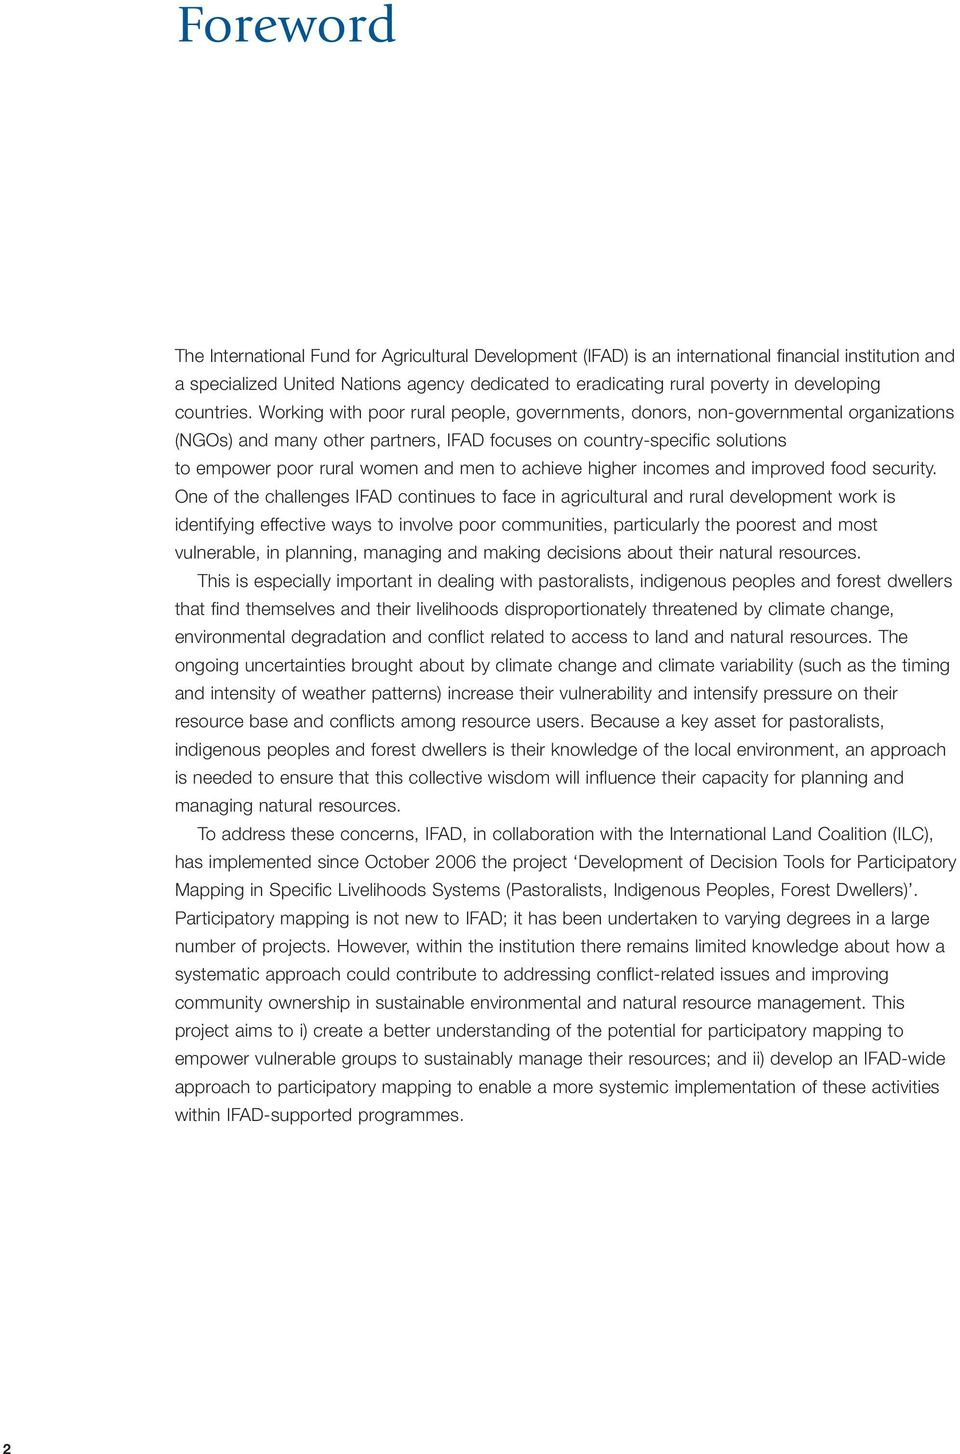 Working with poor rural people, governments, donors, non-governmental organizations (NGOs) and many other partners, IFAD focuses on country-specific solutions to empower poor rural women and men to